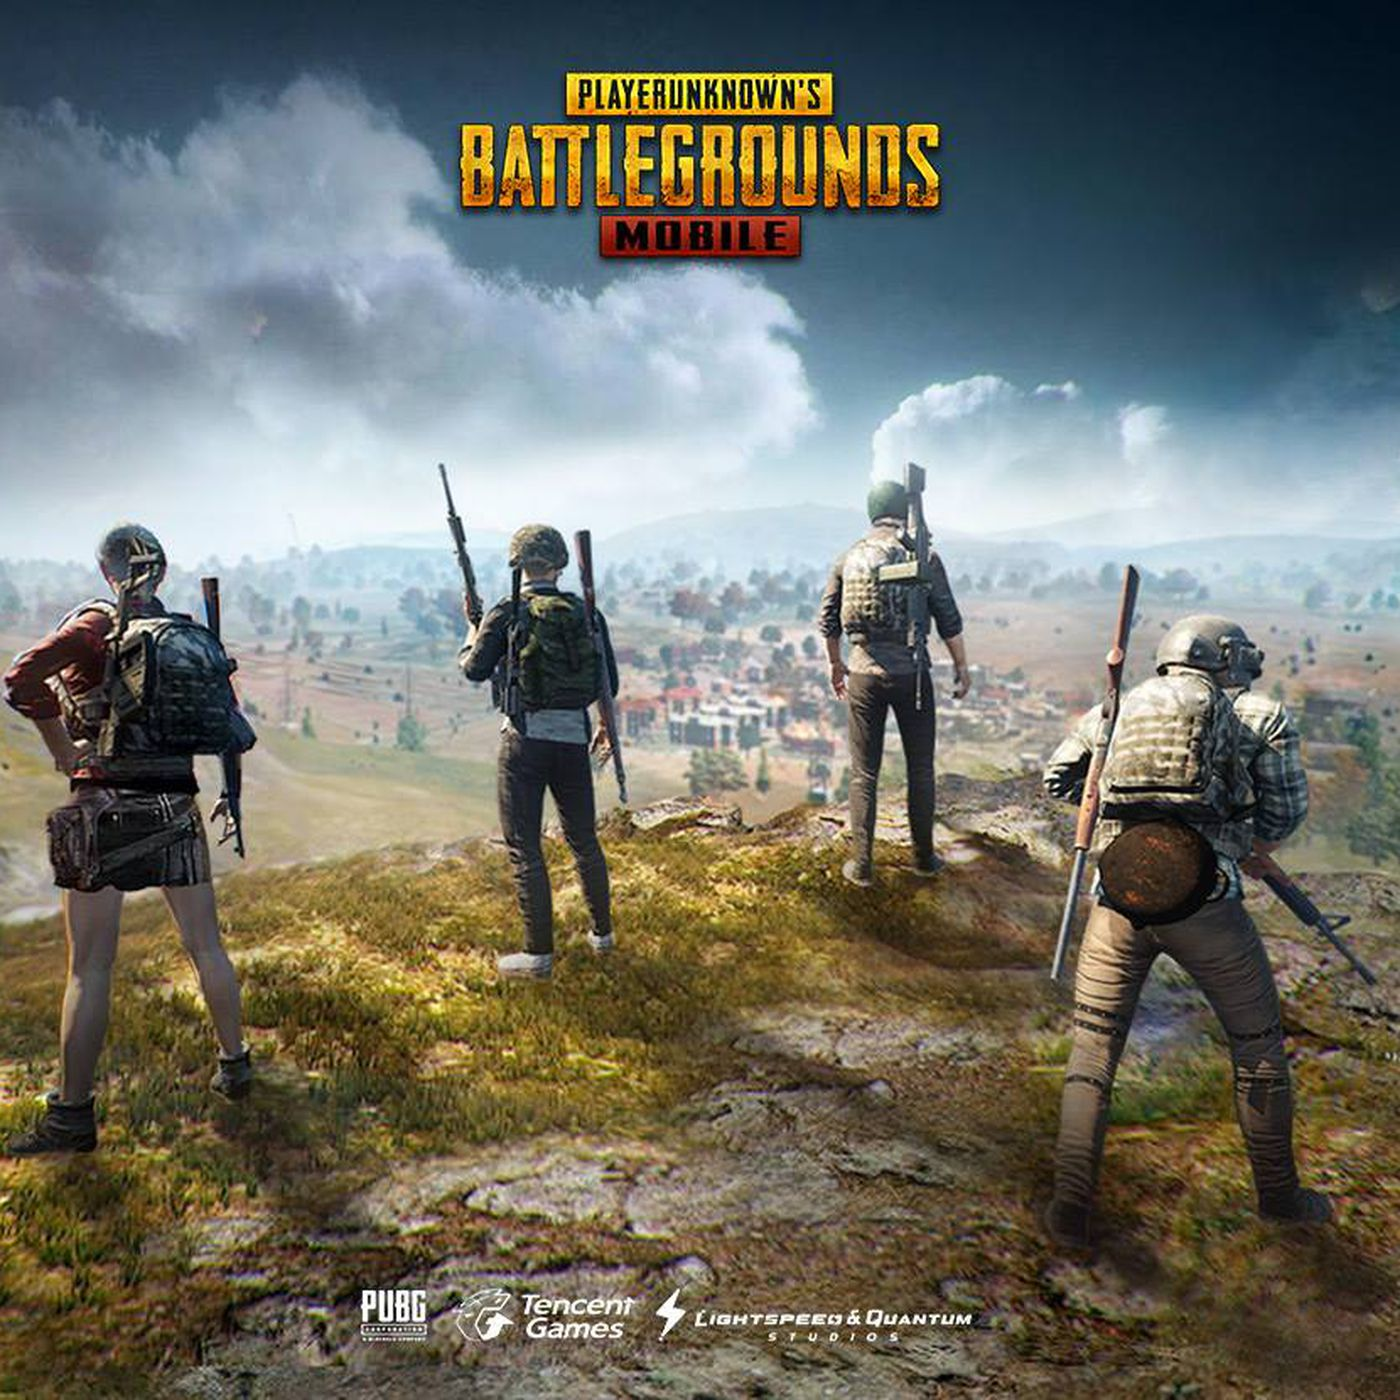 PUBG Mobile is now reportedly the world's highest-grossing